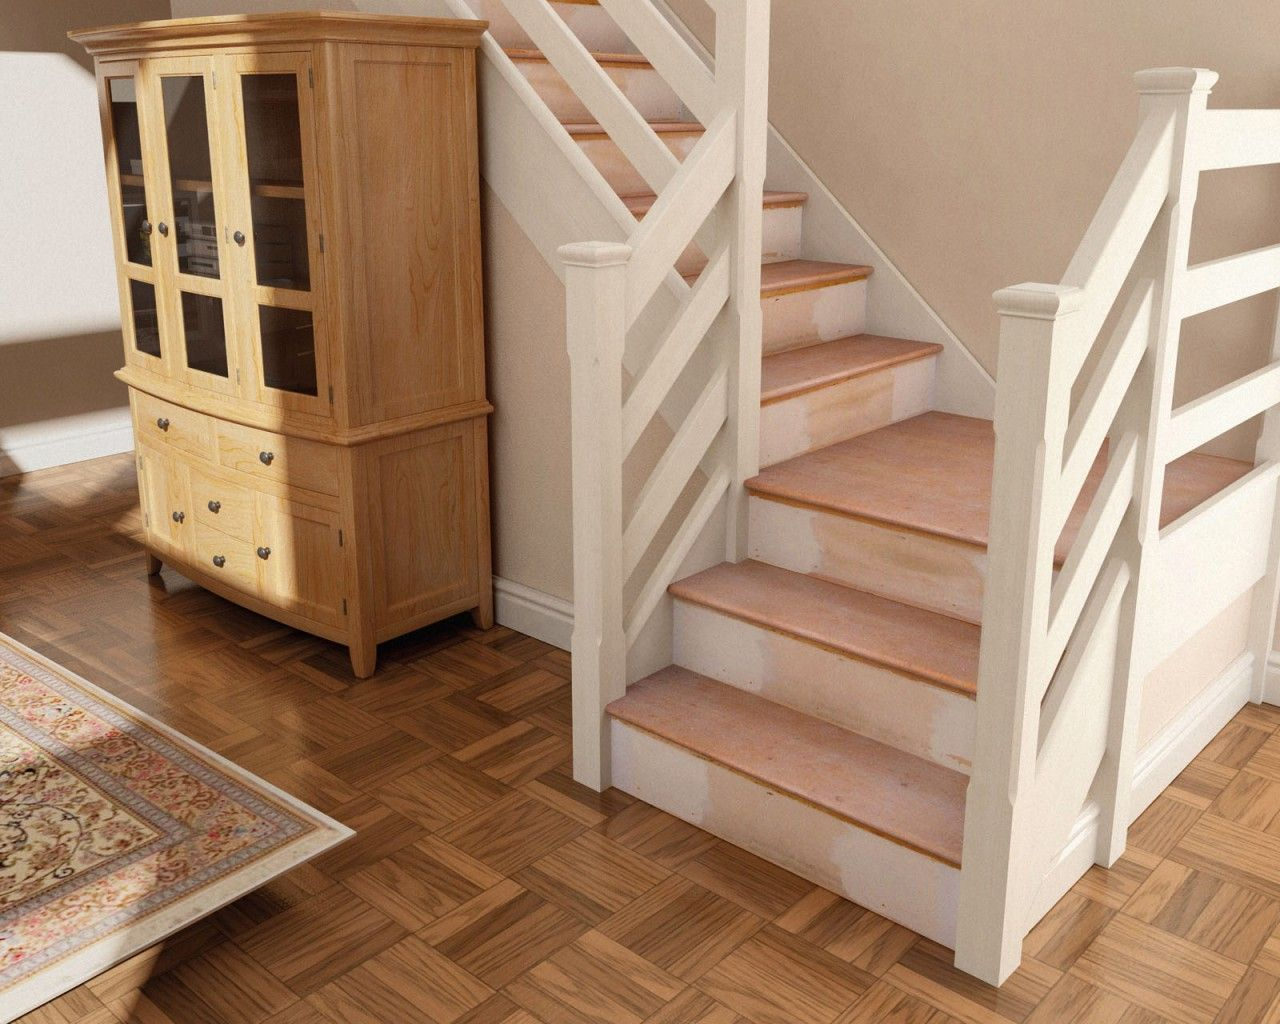 Best Turned Stairs Landing Wood Stair Treads Farmhouse Stairs Wood Railings For Stairs Stair 400 x 300